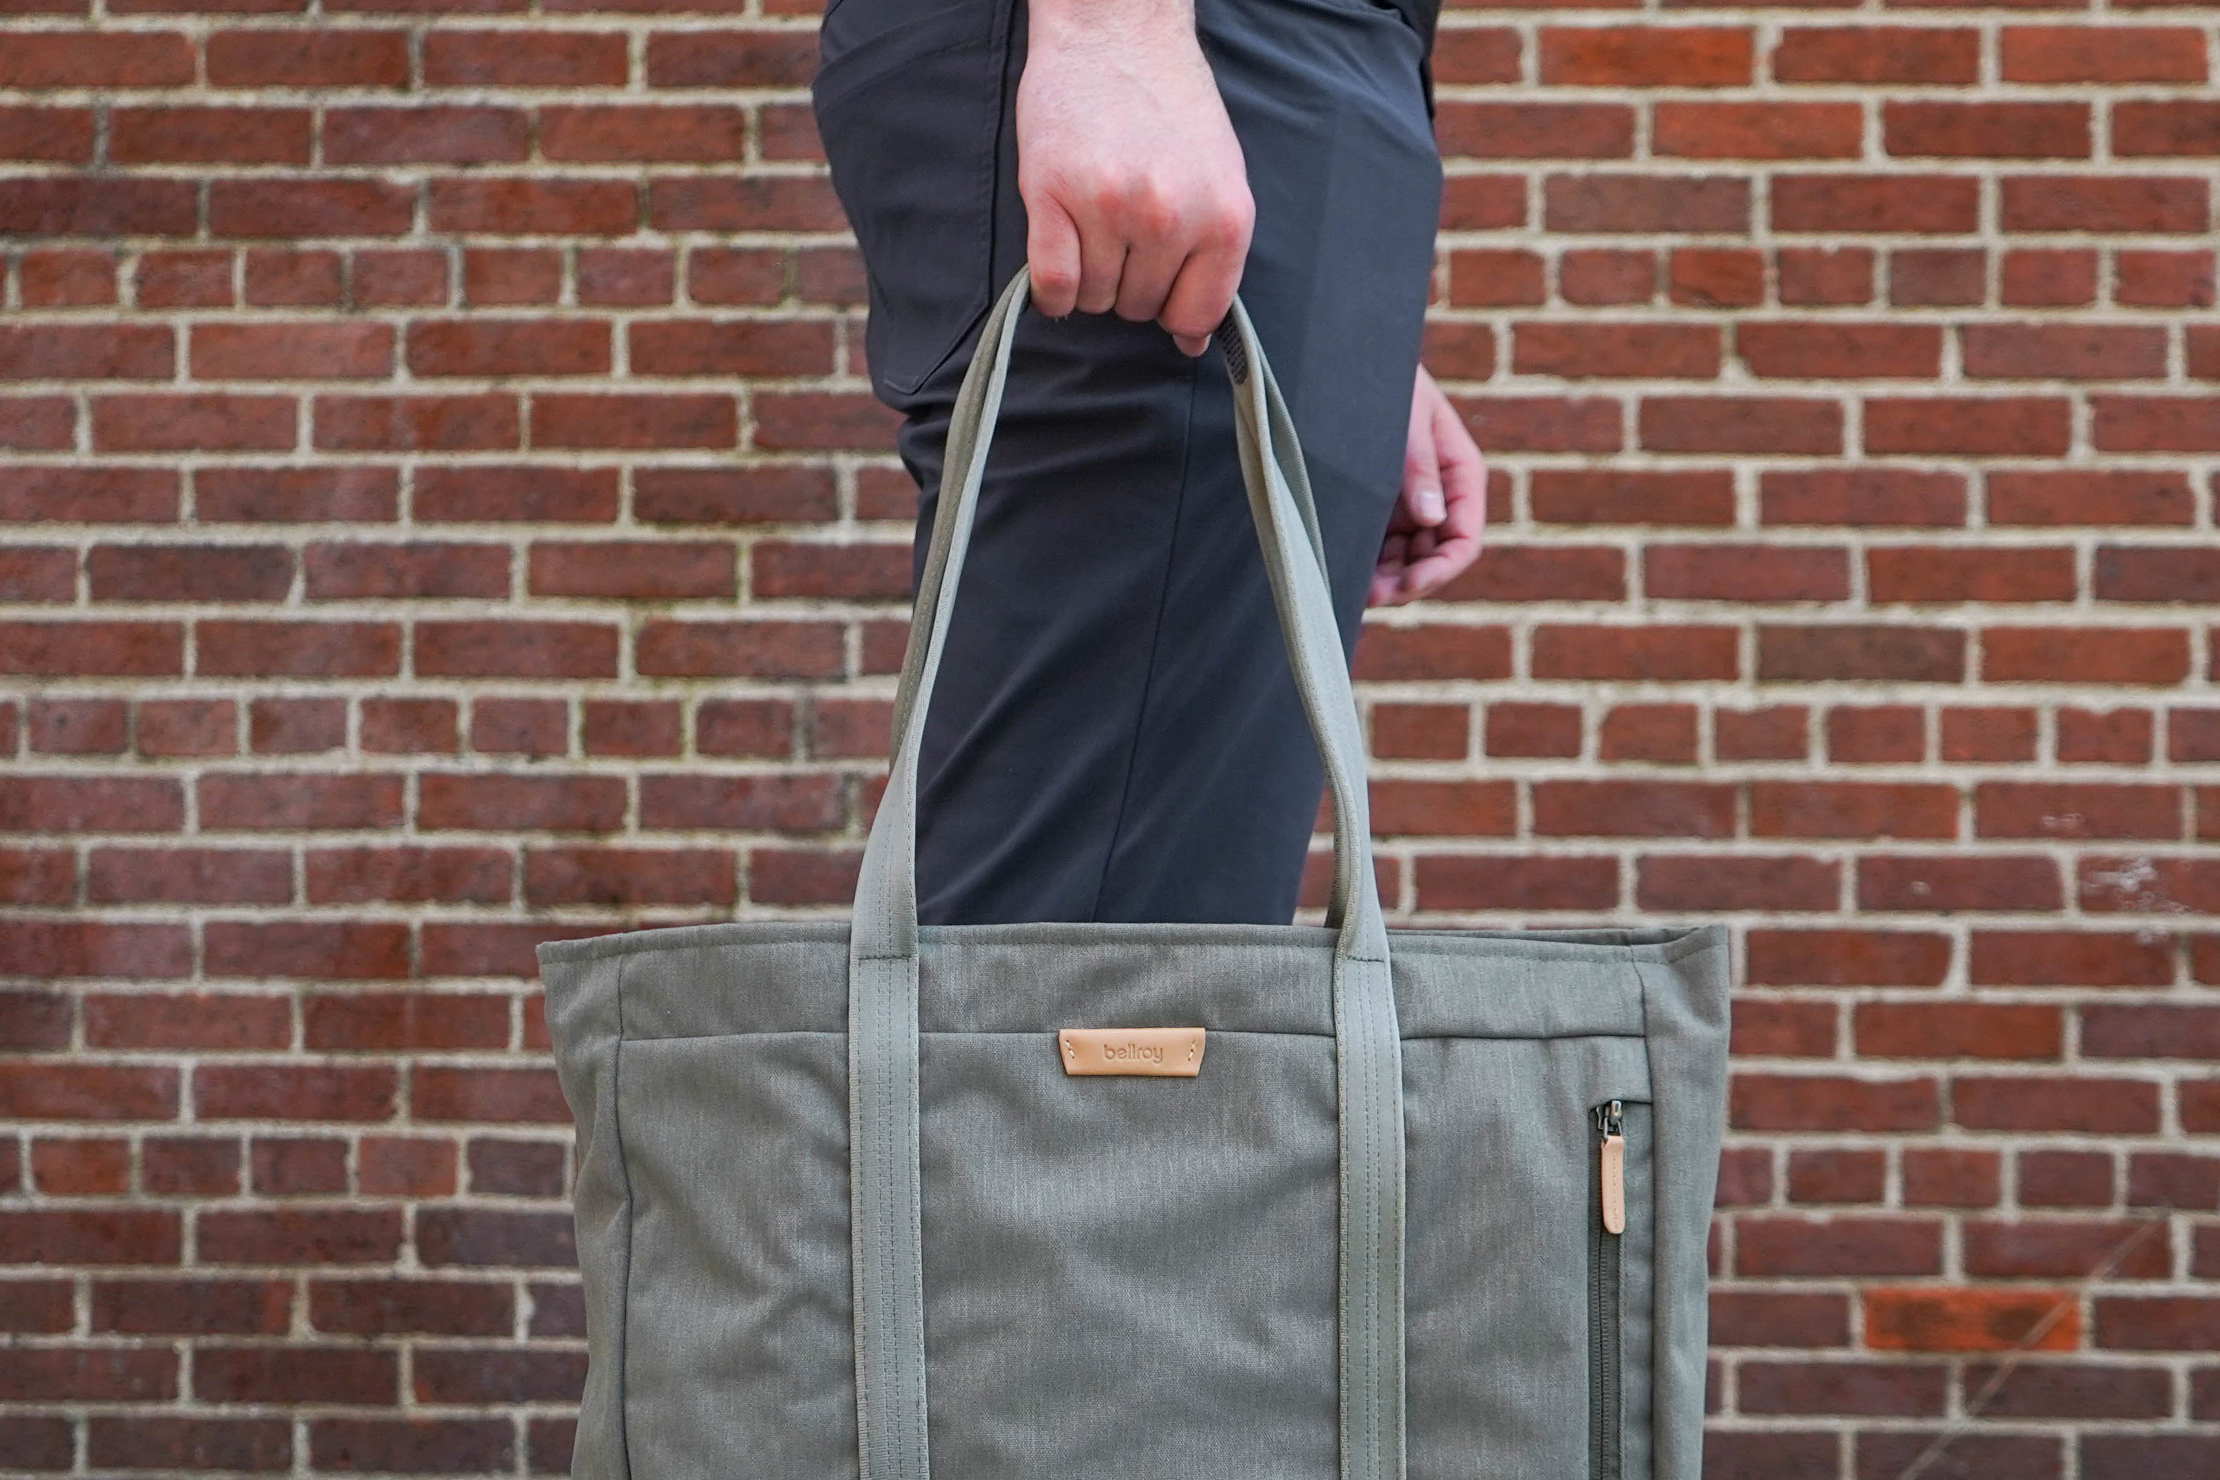 Bellroy Classic Tote in Detroit